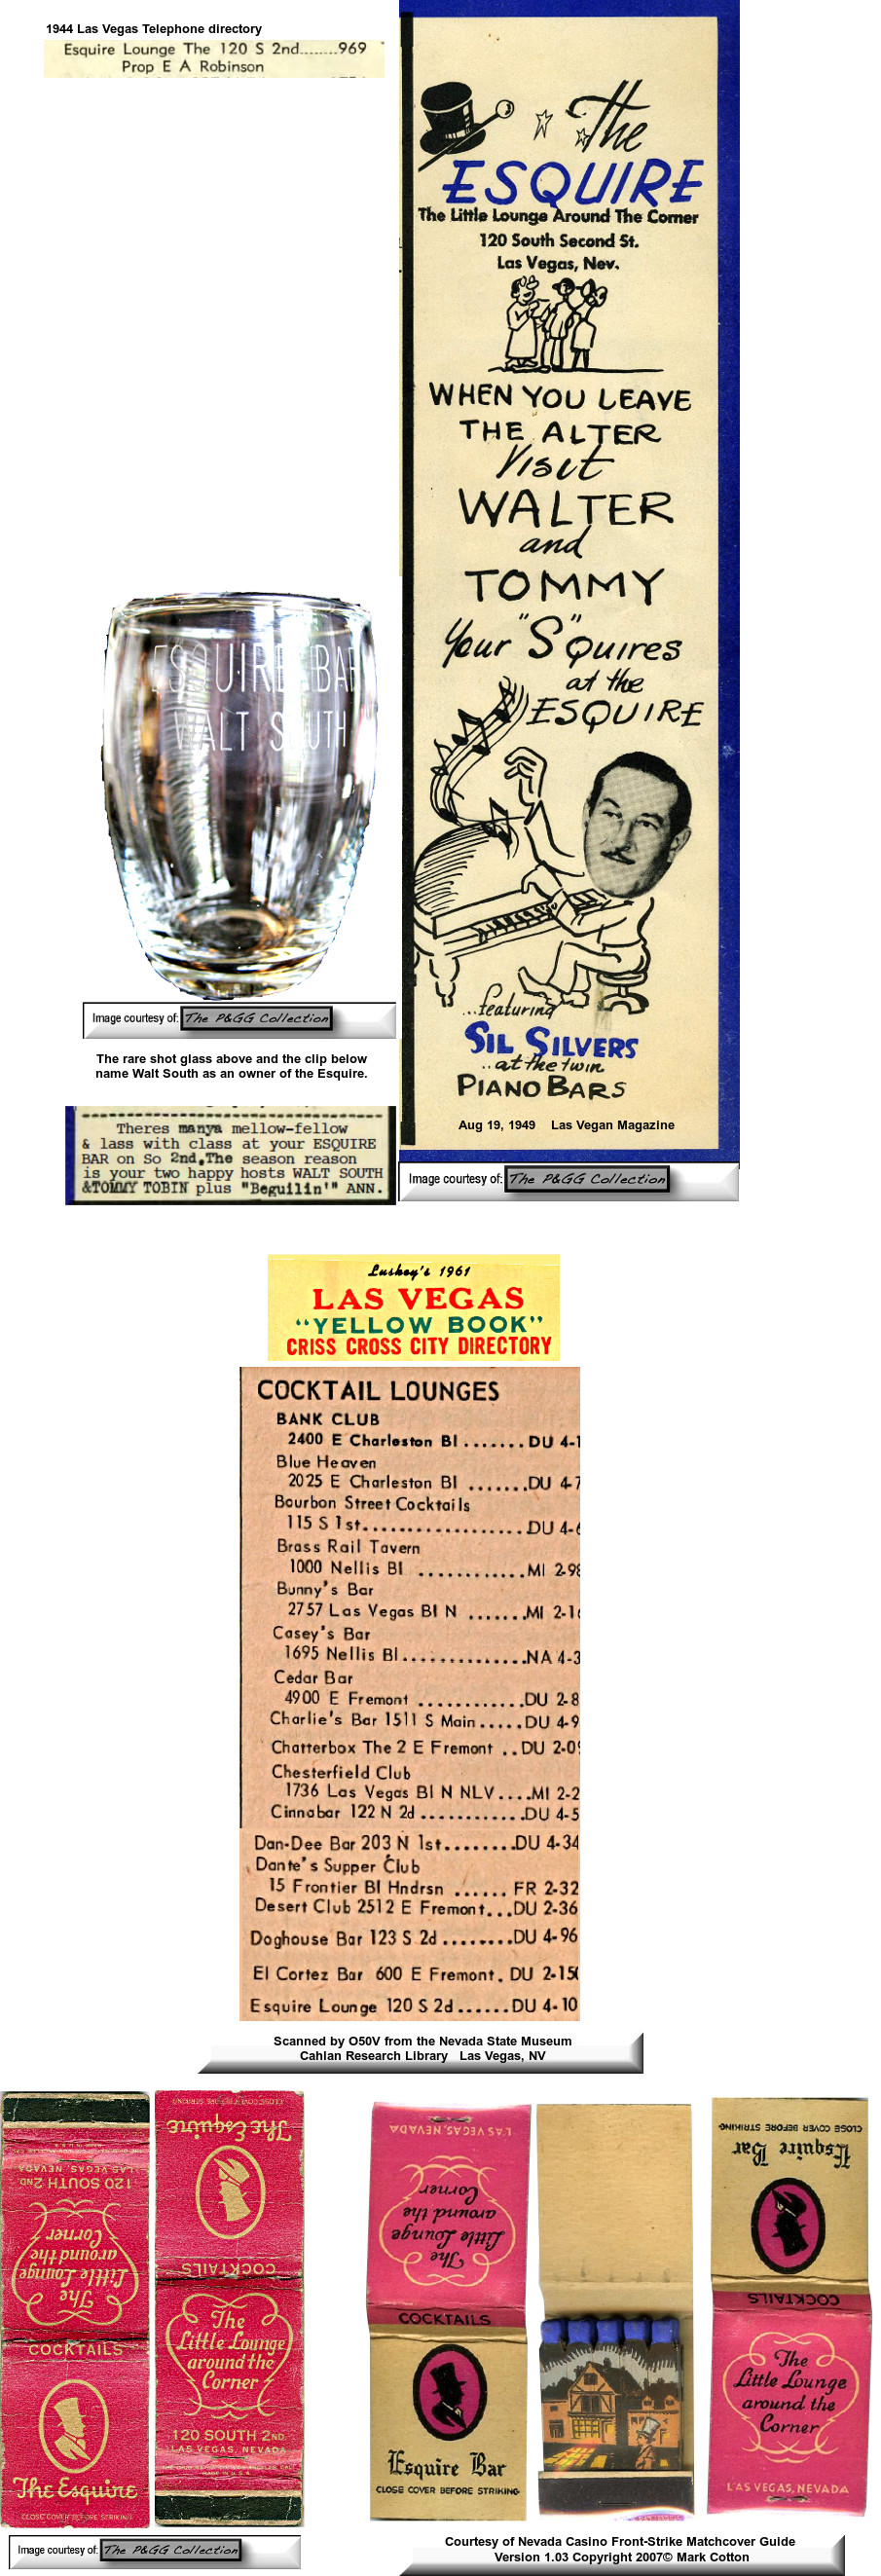 Shot glass and matchbook from the Esquire Club, PGG Collection,  Mark Cotton, Nevada Casino Front-Strile Matchcover Guide 2007